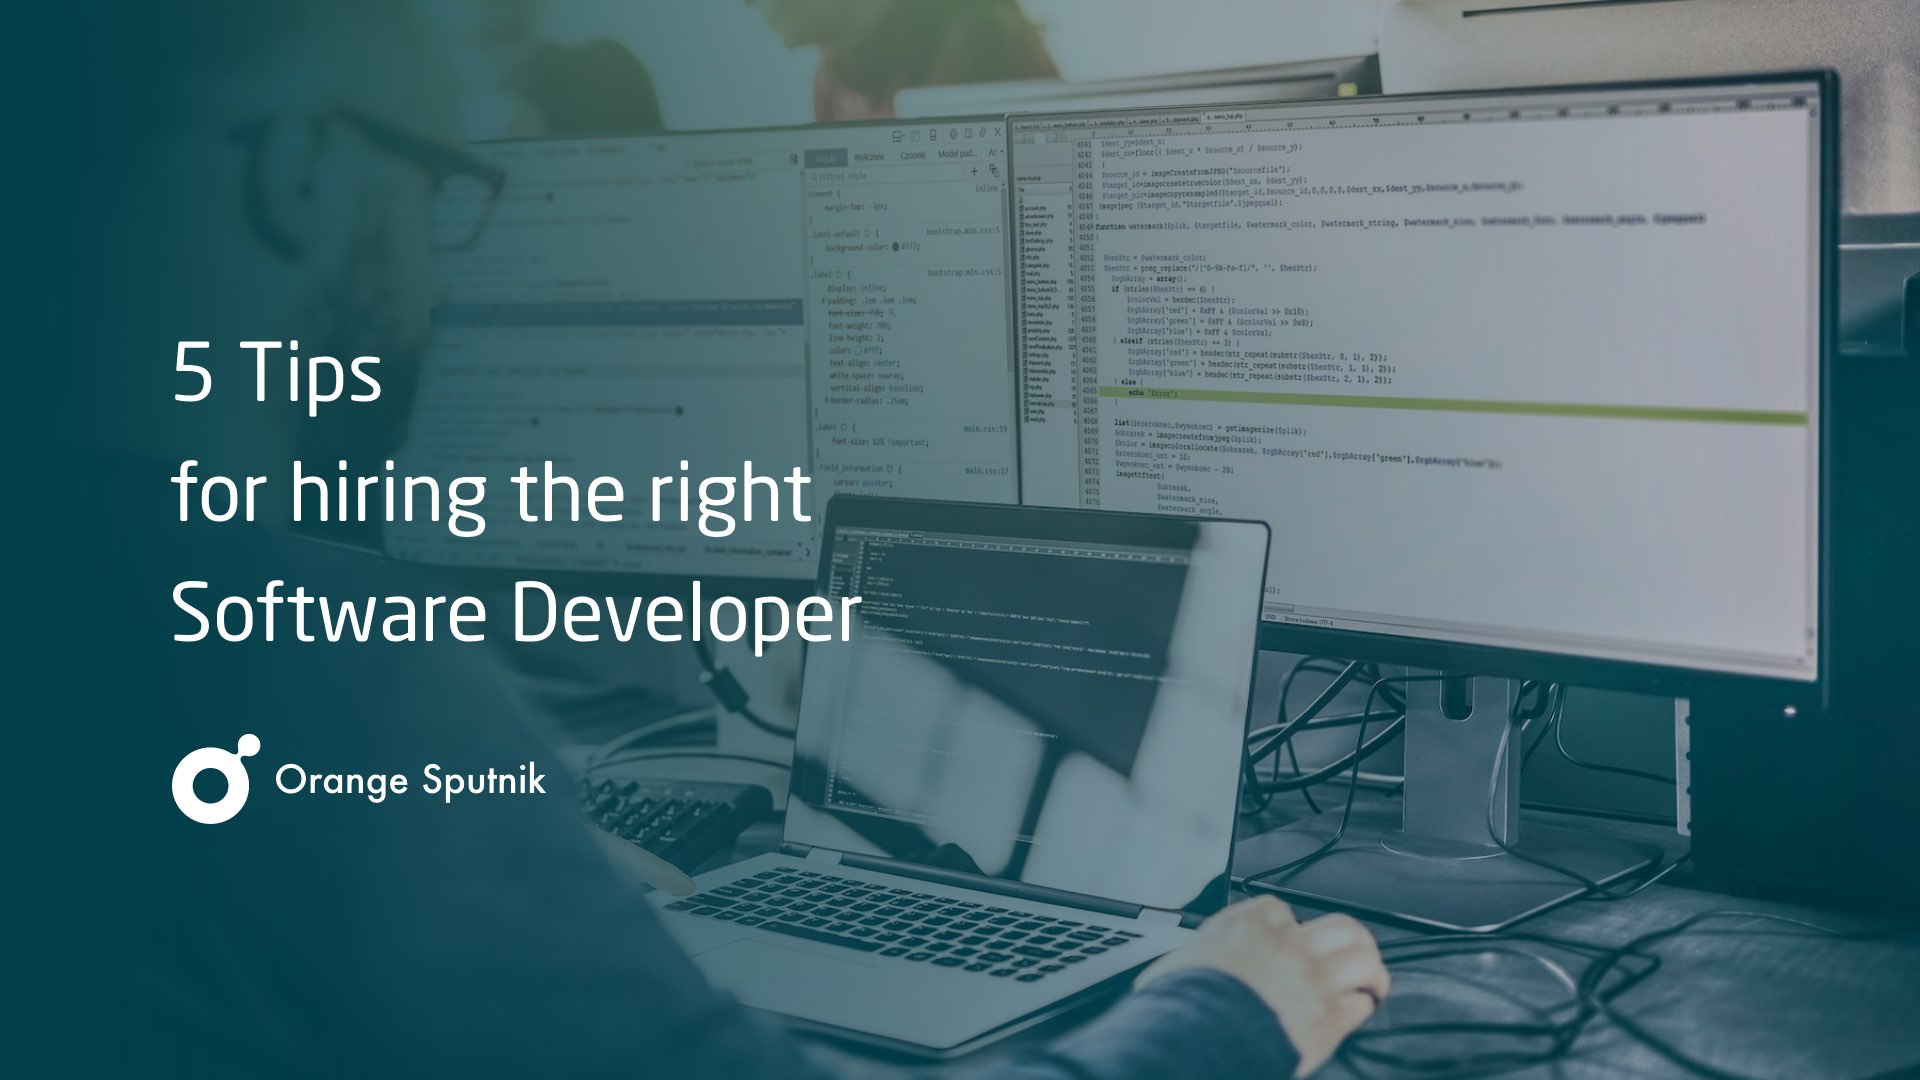 5 Tips for hiring the right Software Developer